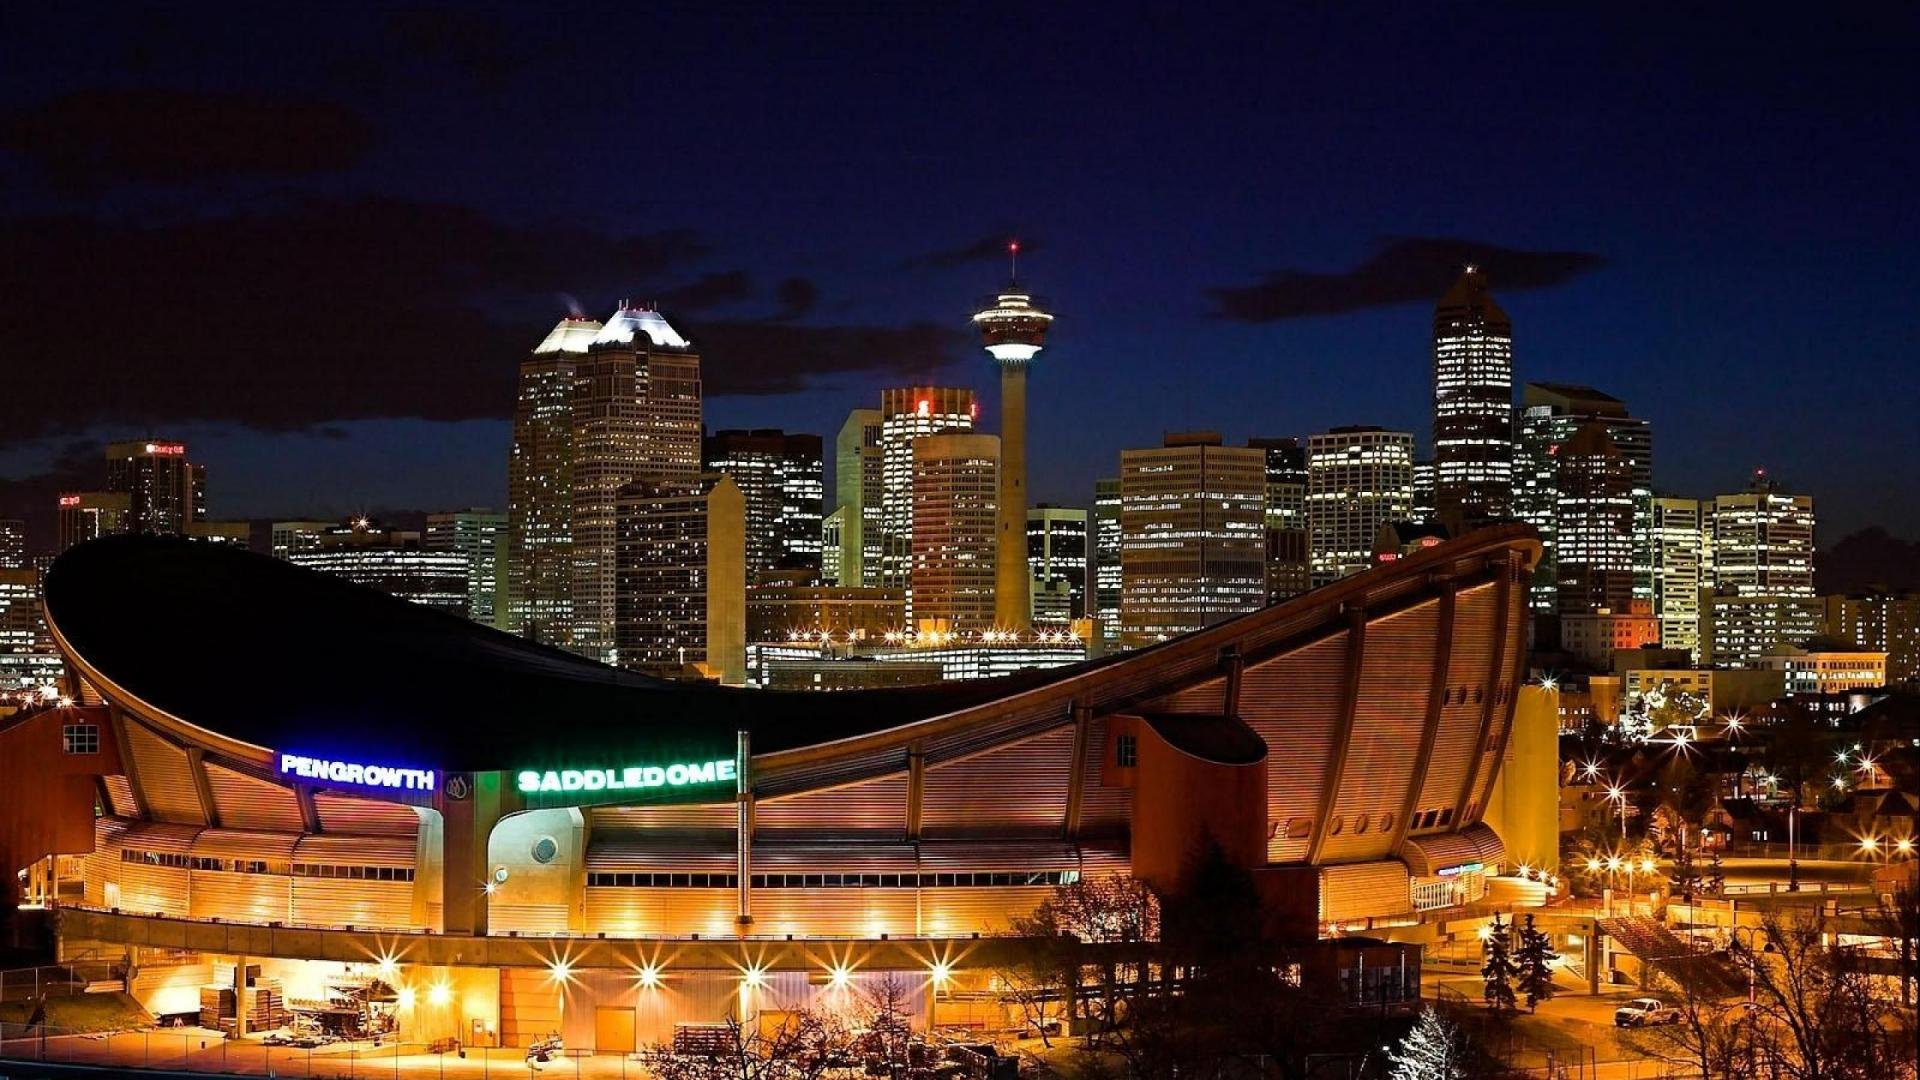 Calgary Hd Wallpapers 7wallpapers Net